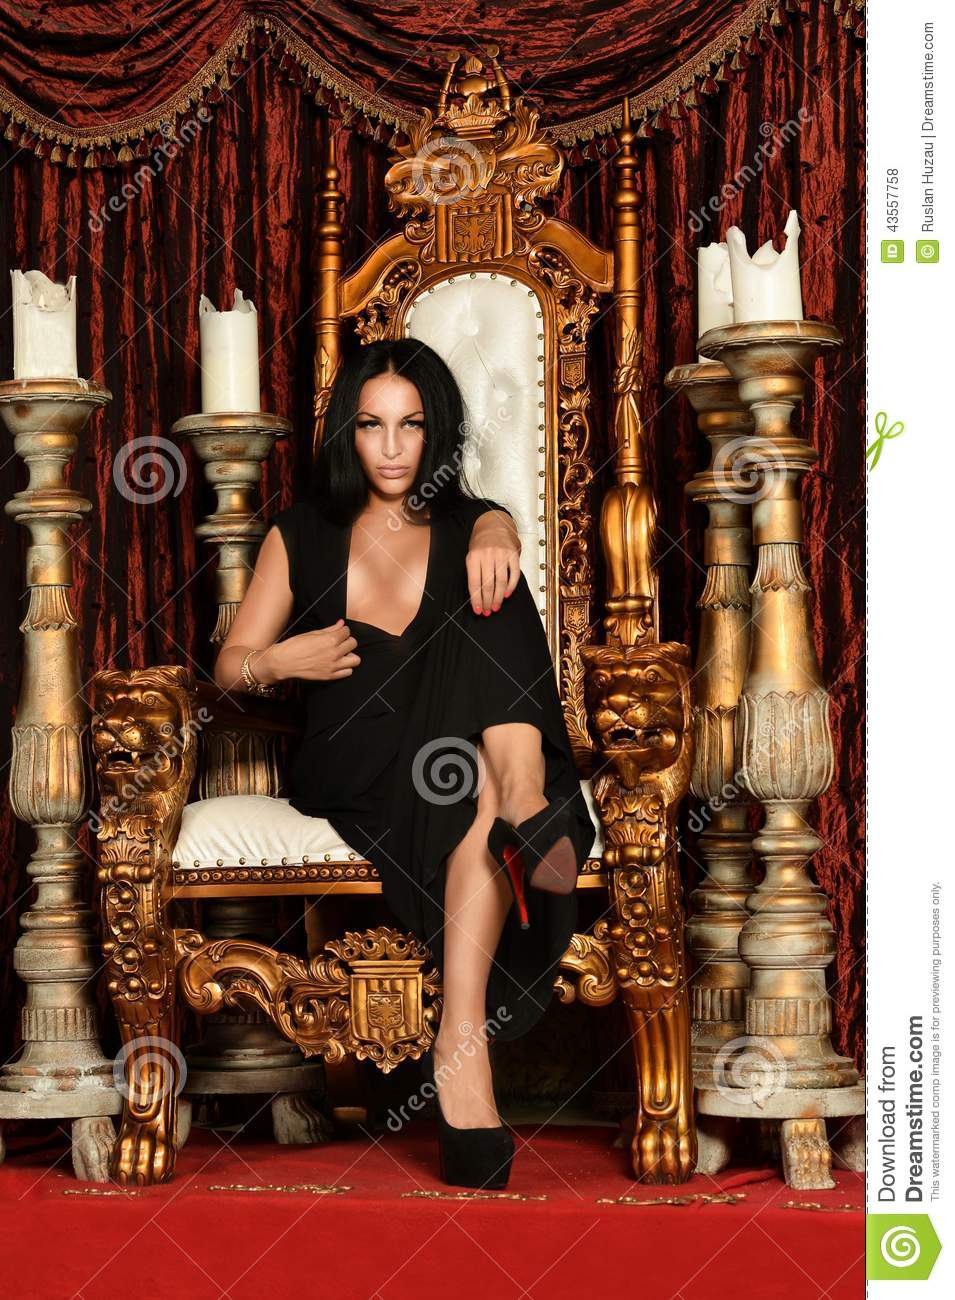 Woman Sitting On Throne Stock Photo Image: 43557758